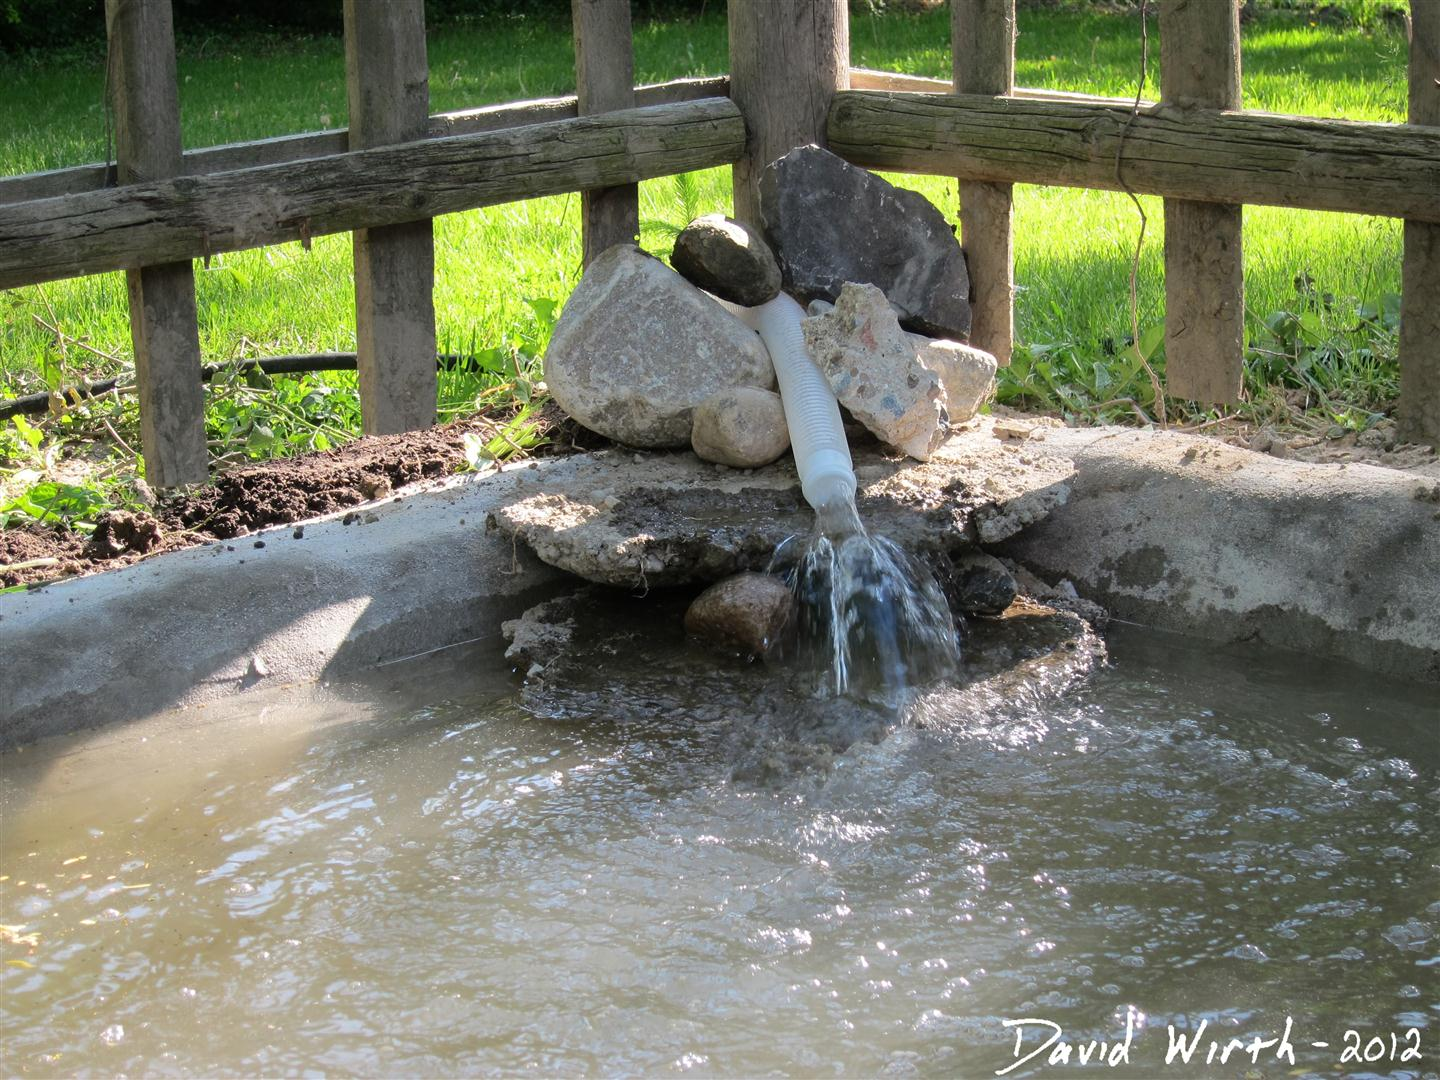 Ideas for homemade water fountains house design decor interior for Homemade pond ideas